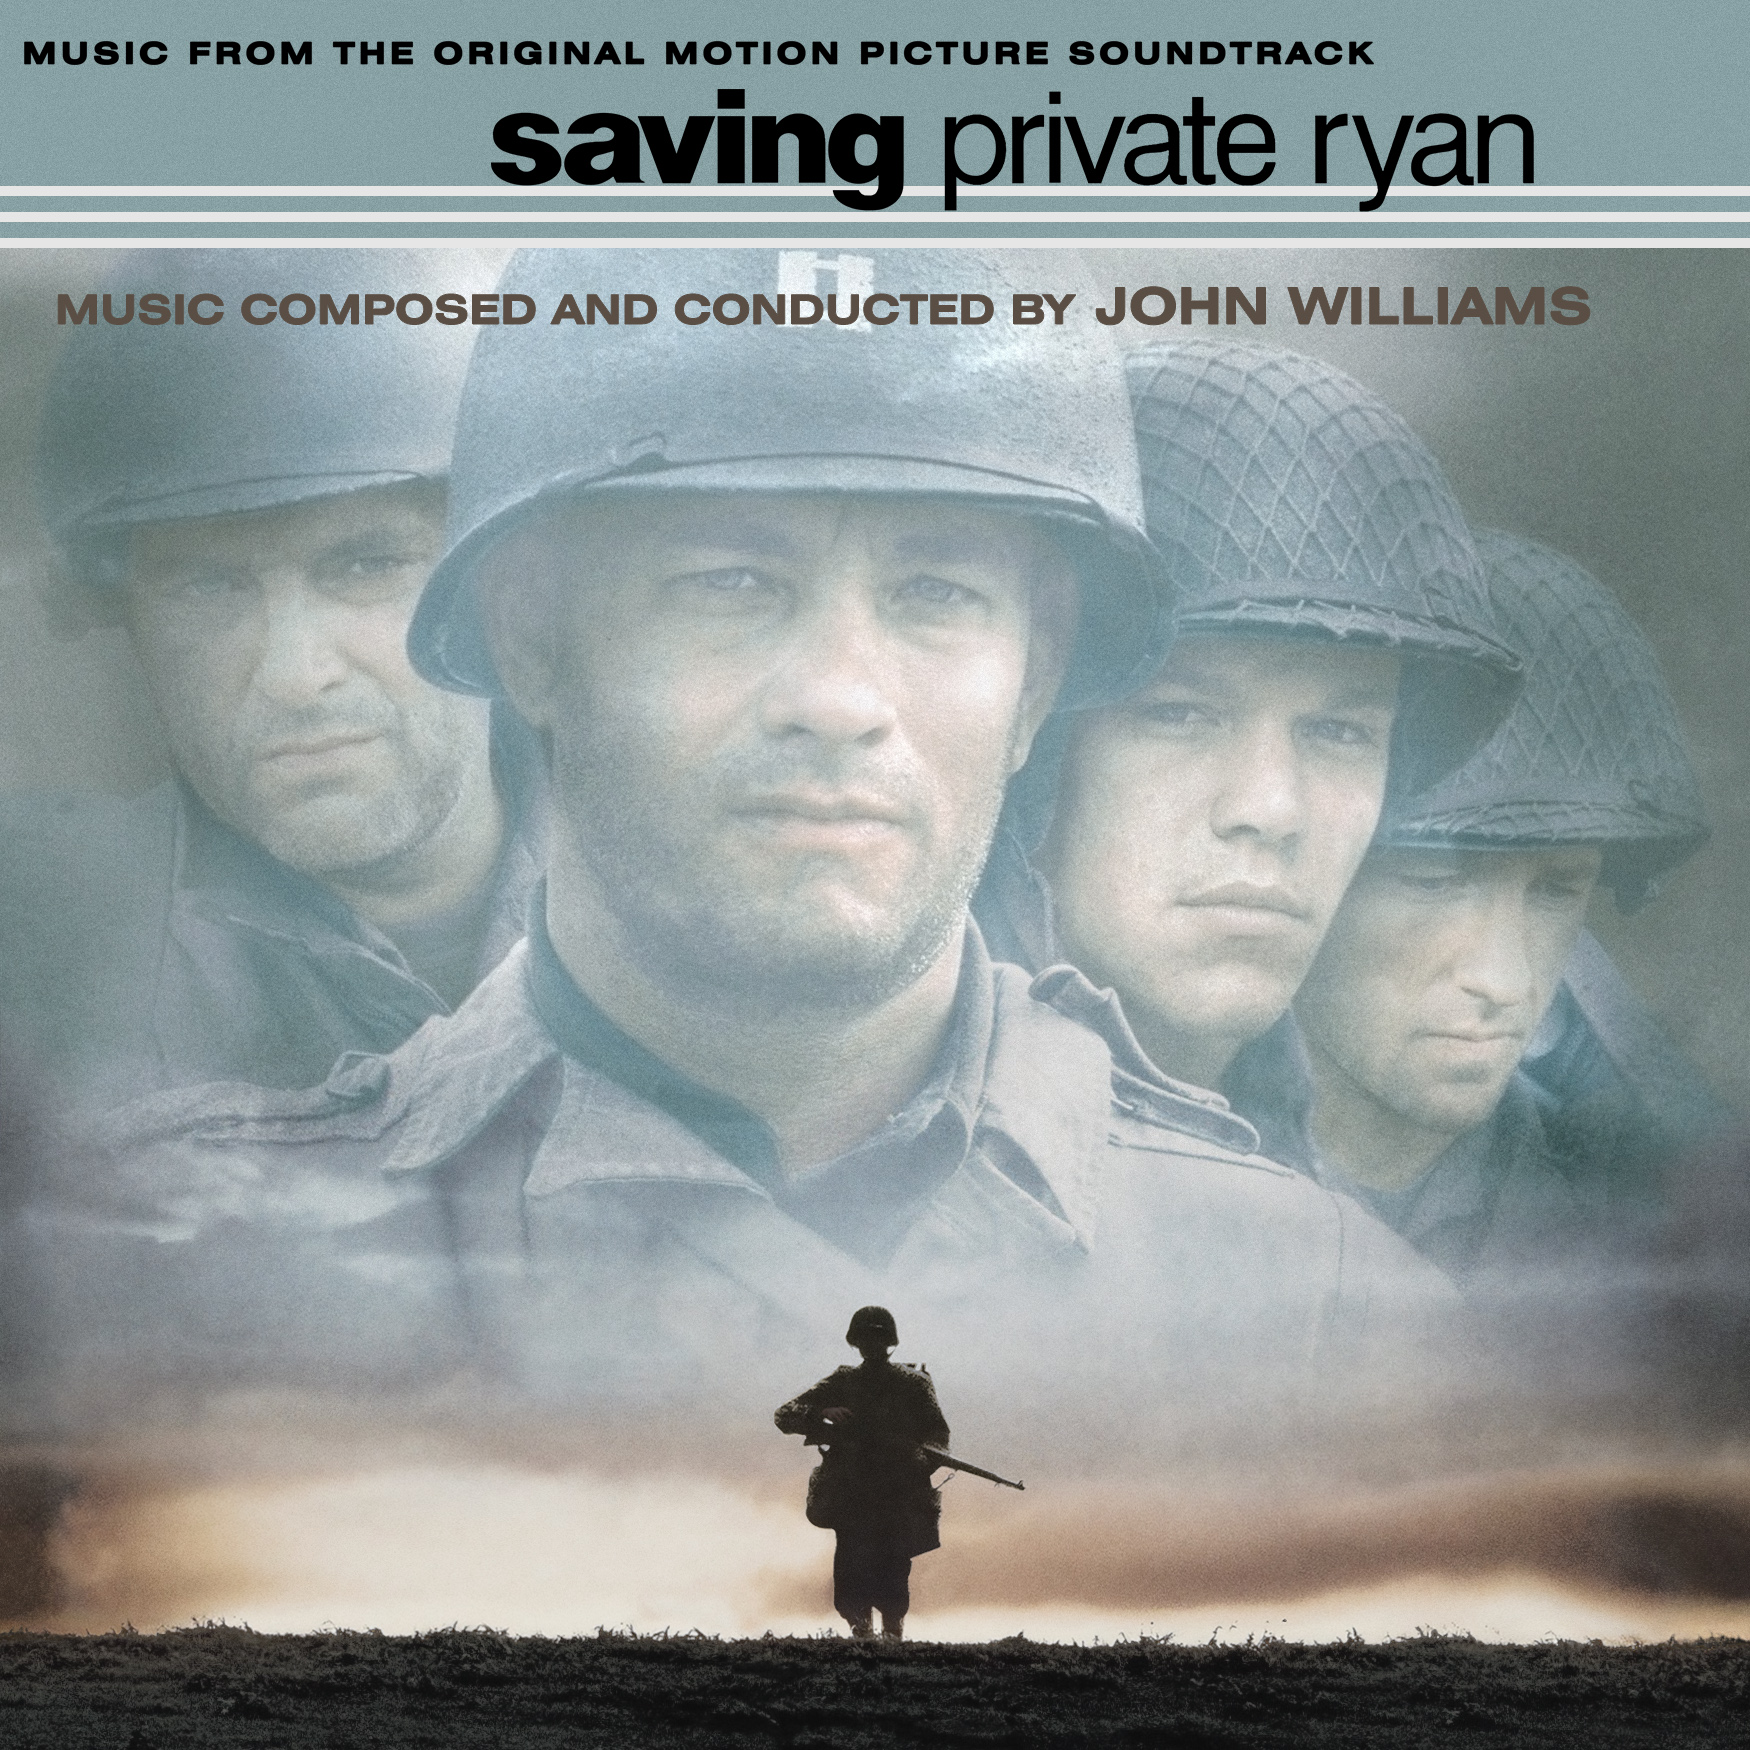 Album Artist: John Williams / Album Title: Saving Private Ryan (Music from the Original Motion Picture)